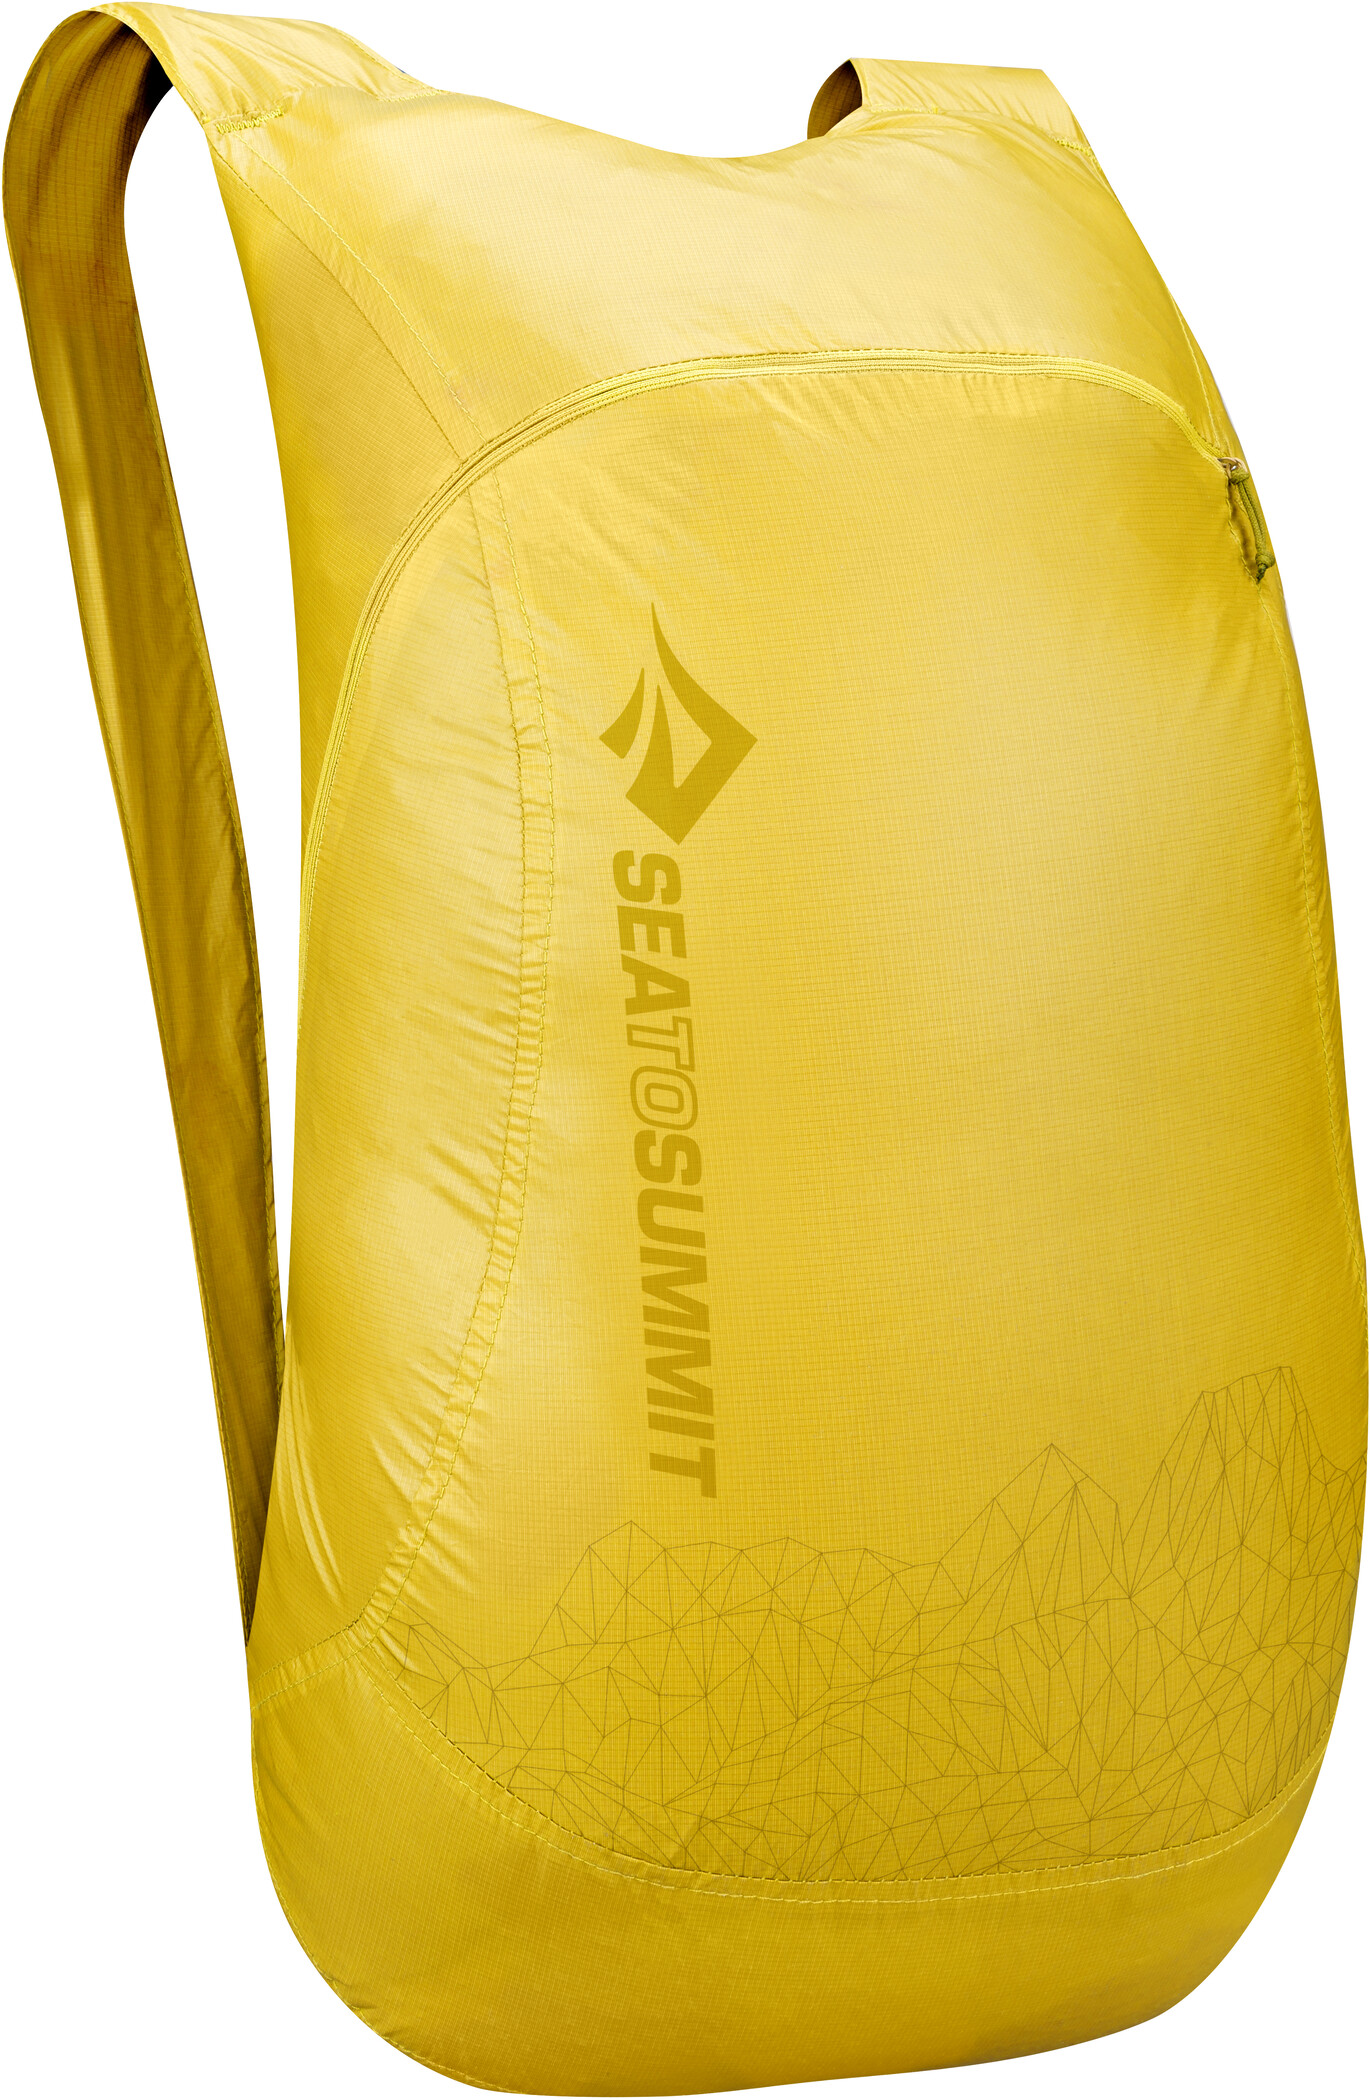 Sea to Summit Ultra-Sil Nano Rygsæk, yellow (2019) | Travel bags